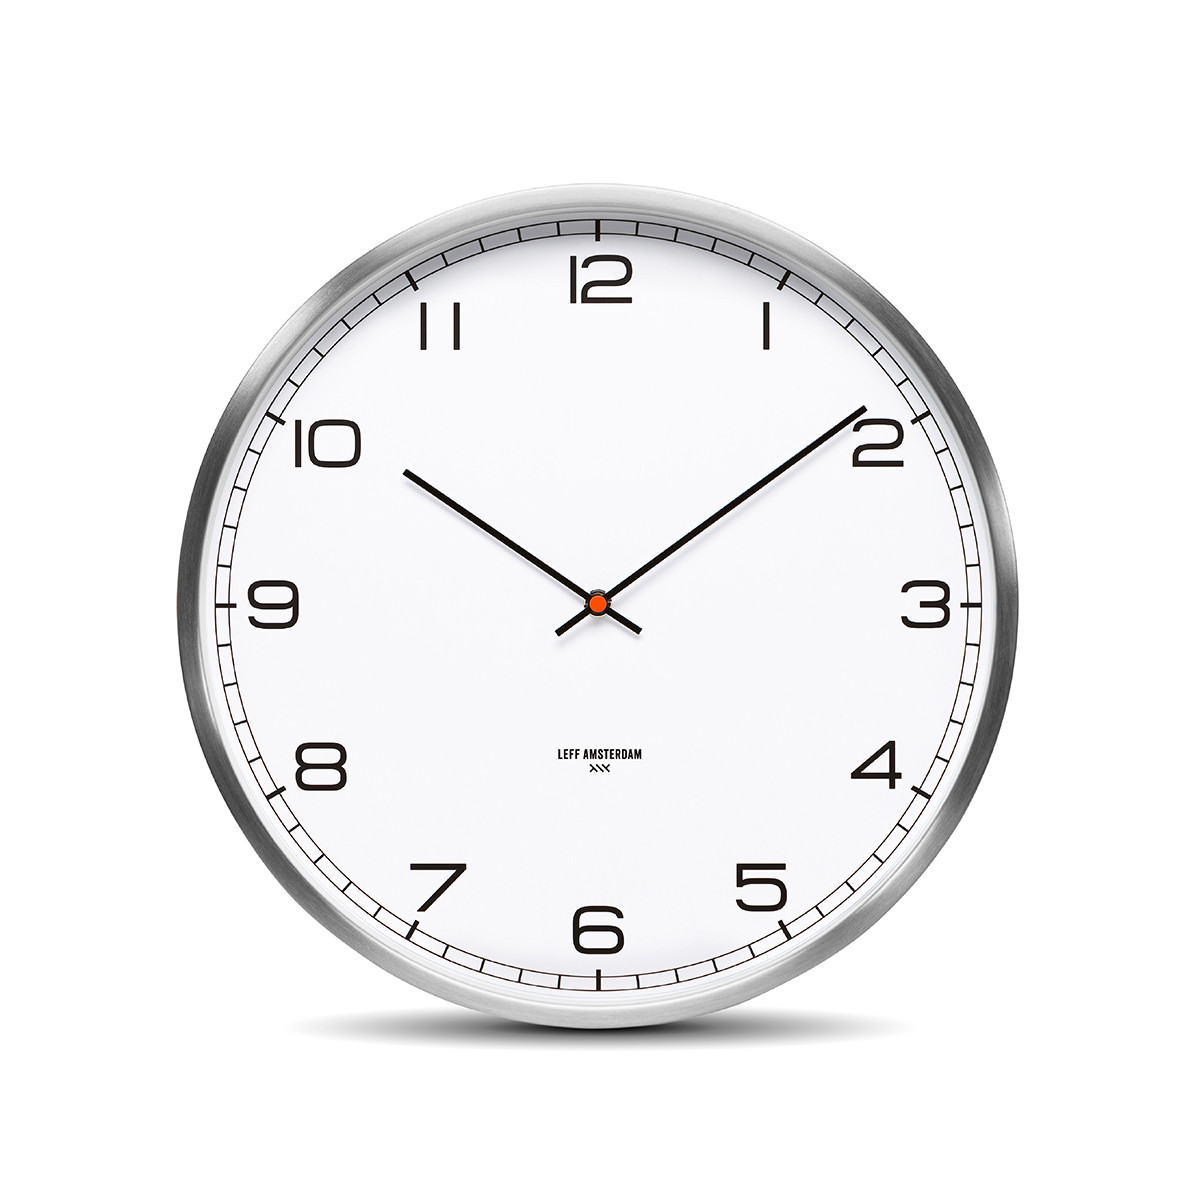 Leff Amsterdam One 35 Wall Clock